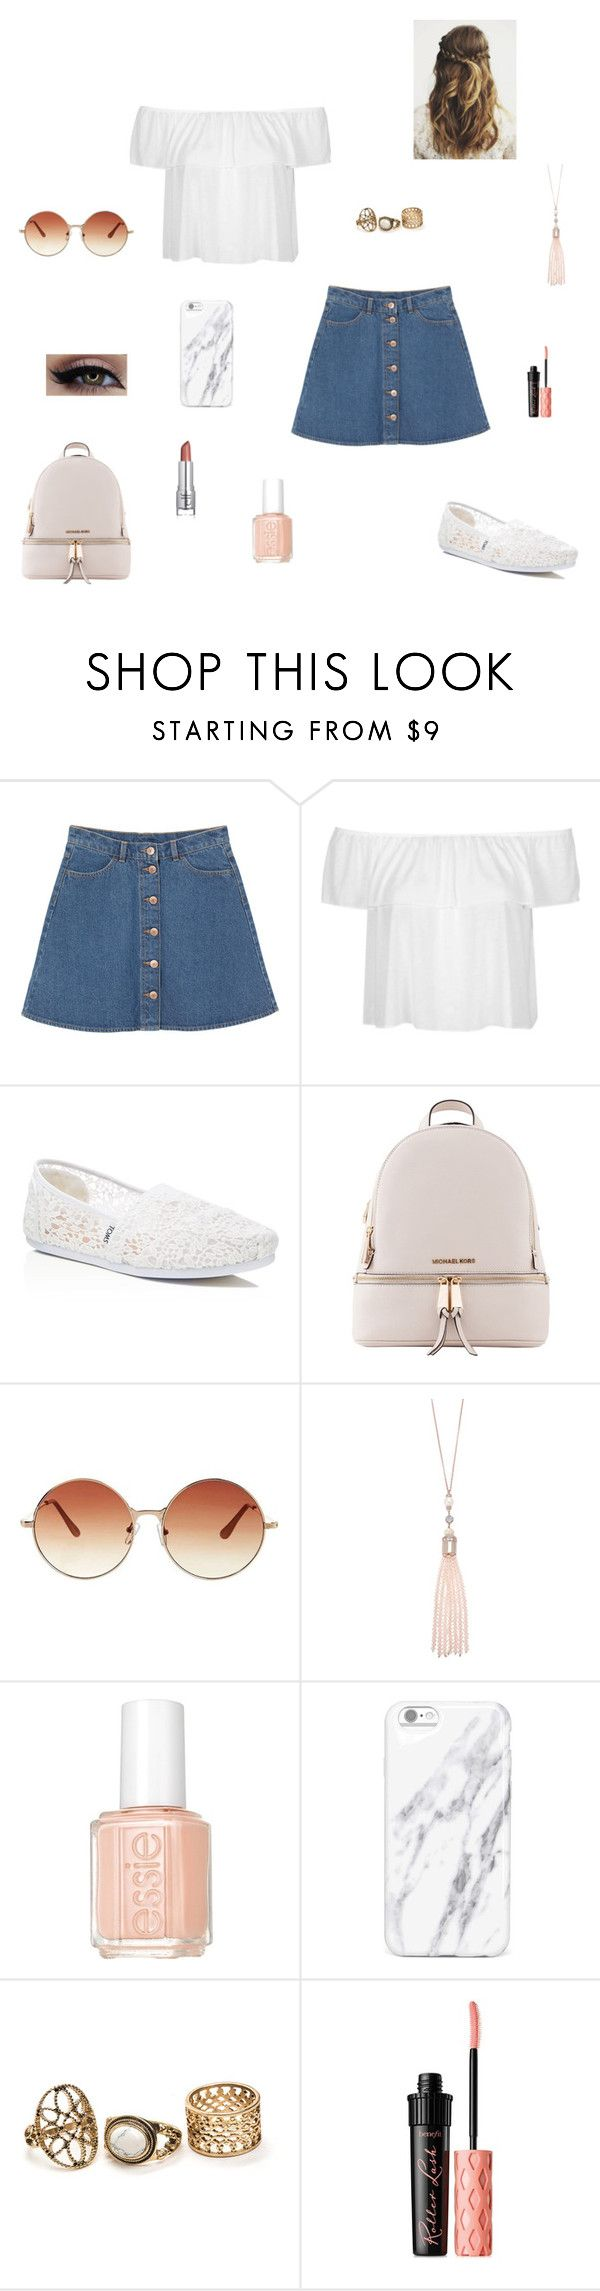 """hide away"" by synclairel ❤ liked on Polyvore featuring Monki, Topshop, TOMS, Michael Kors, Oasis, Essie and Benefit"